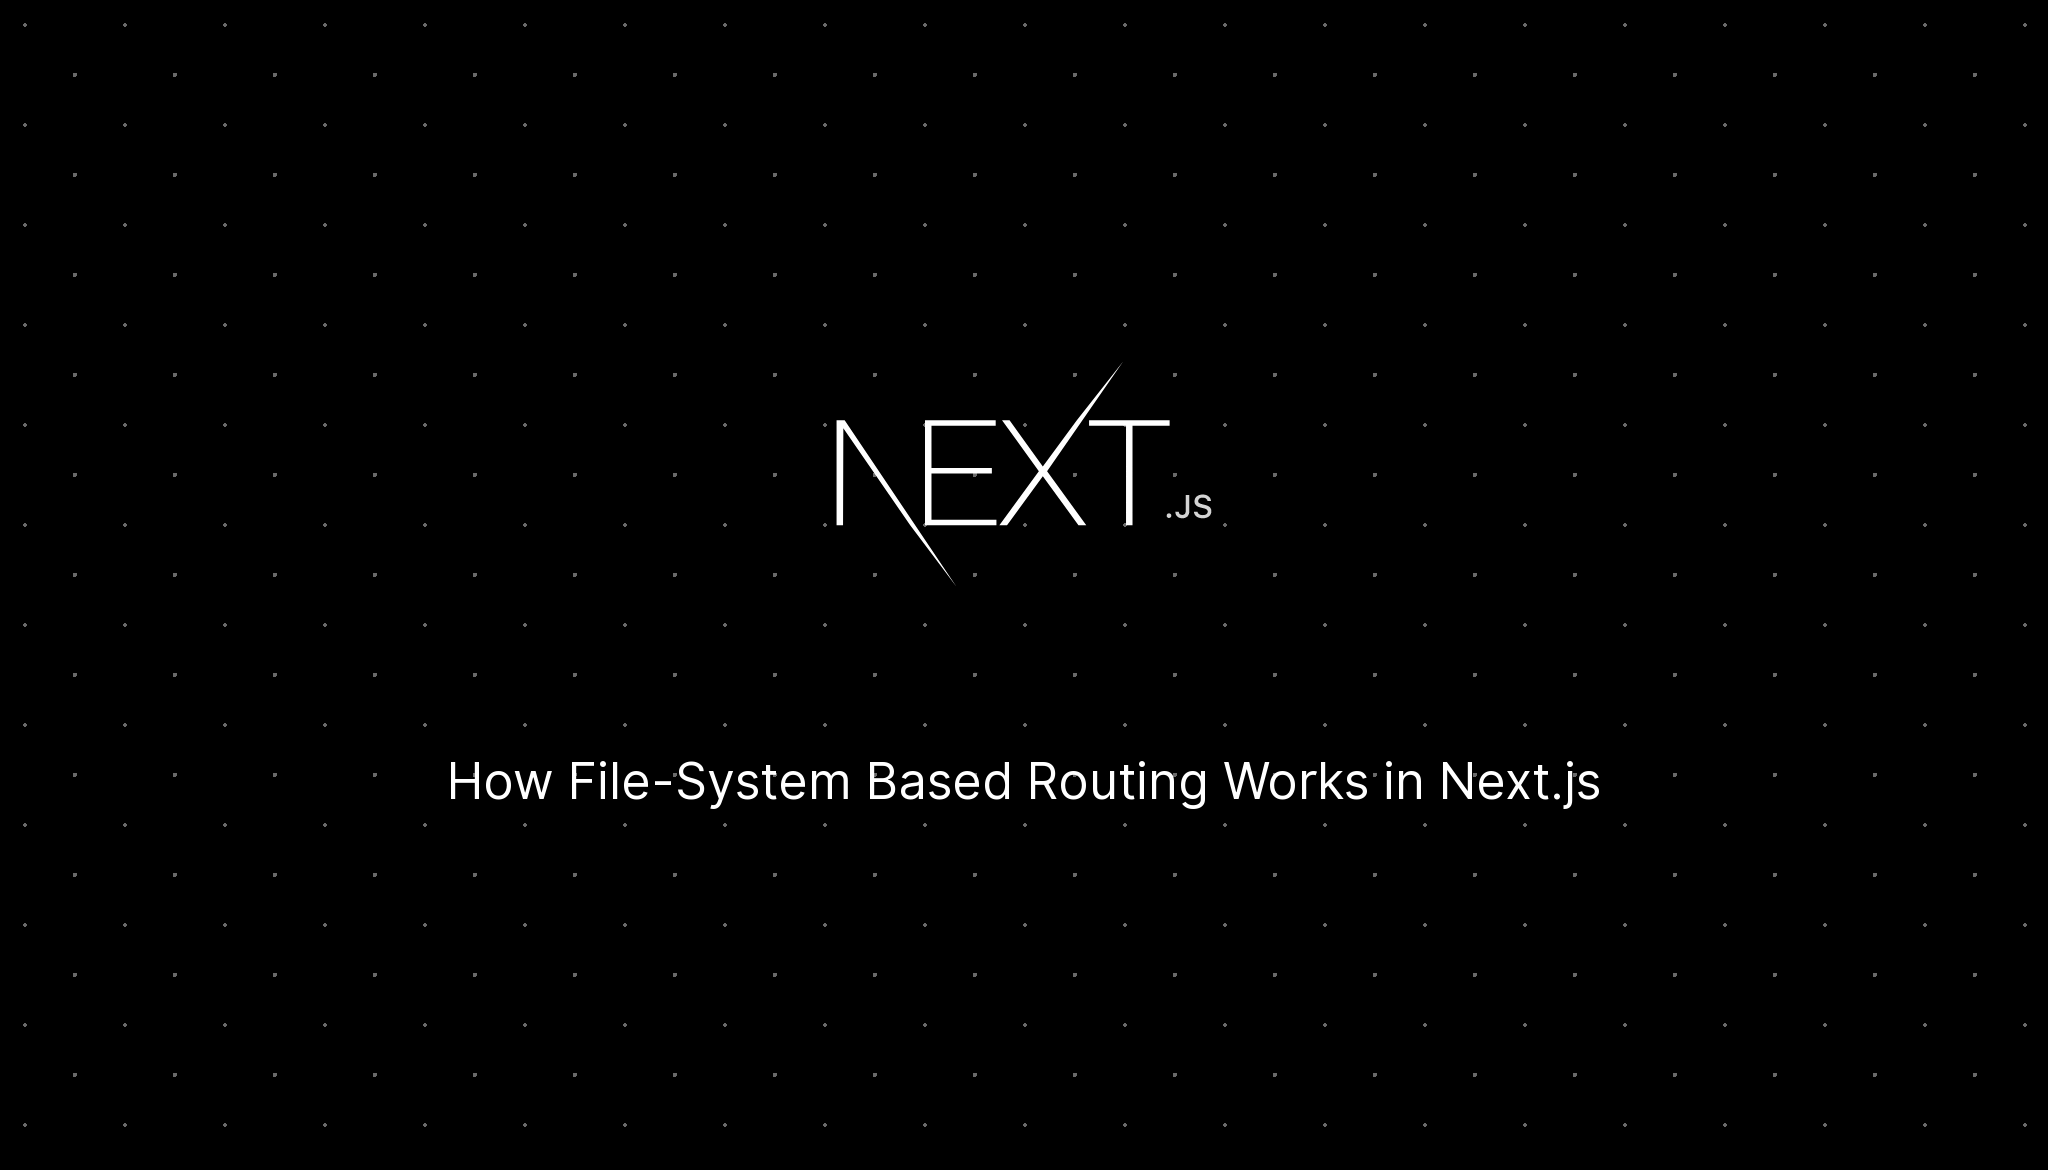 How File-System Based Routing Works in Next.js